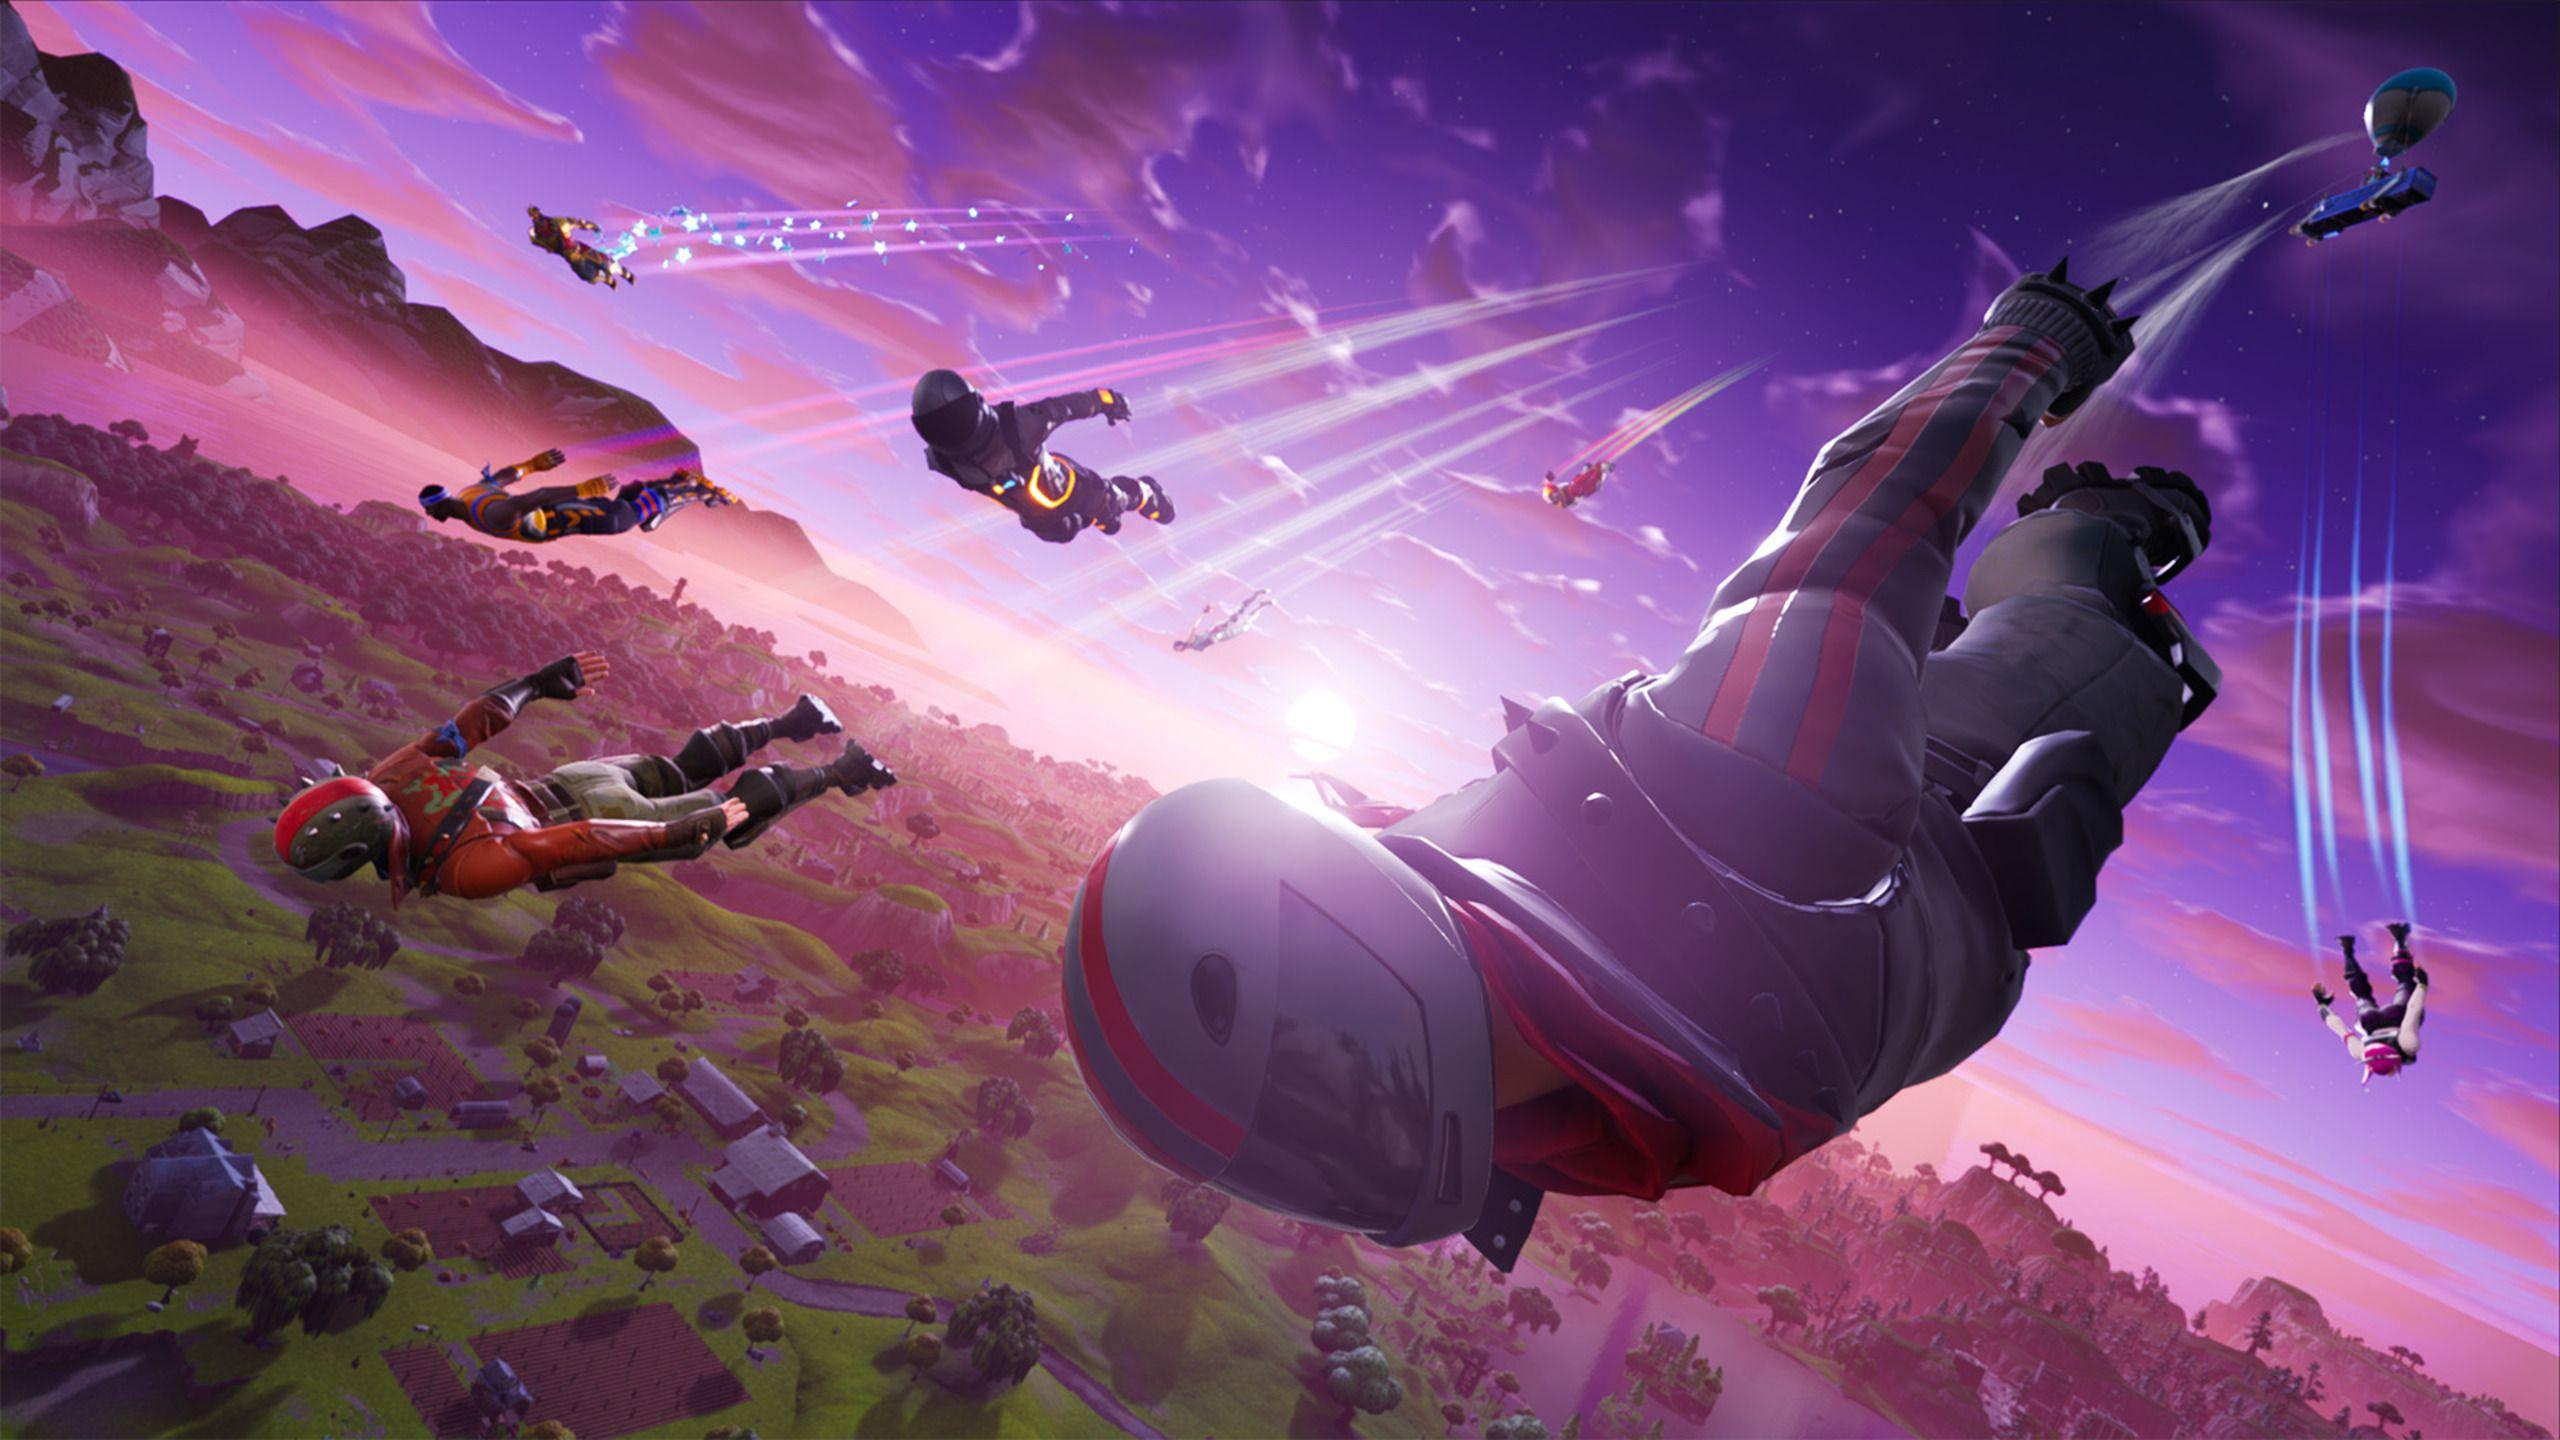 2560x1440 Fortnite Battle Royale HD 1440P Resolution HD 4k